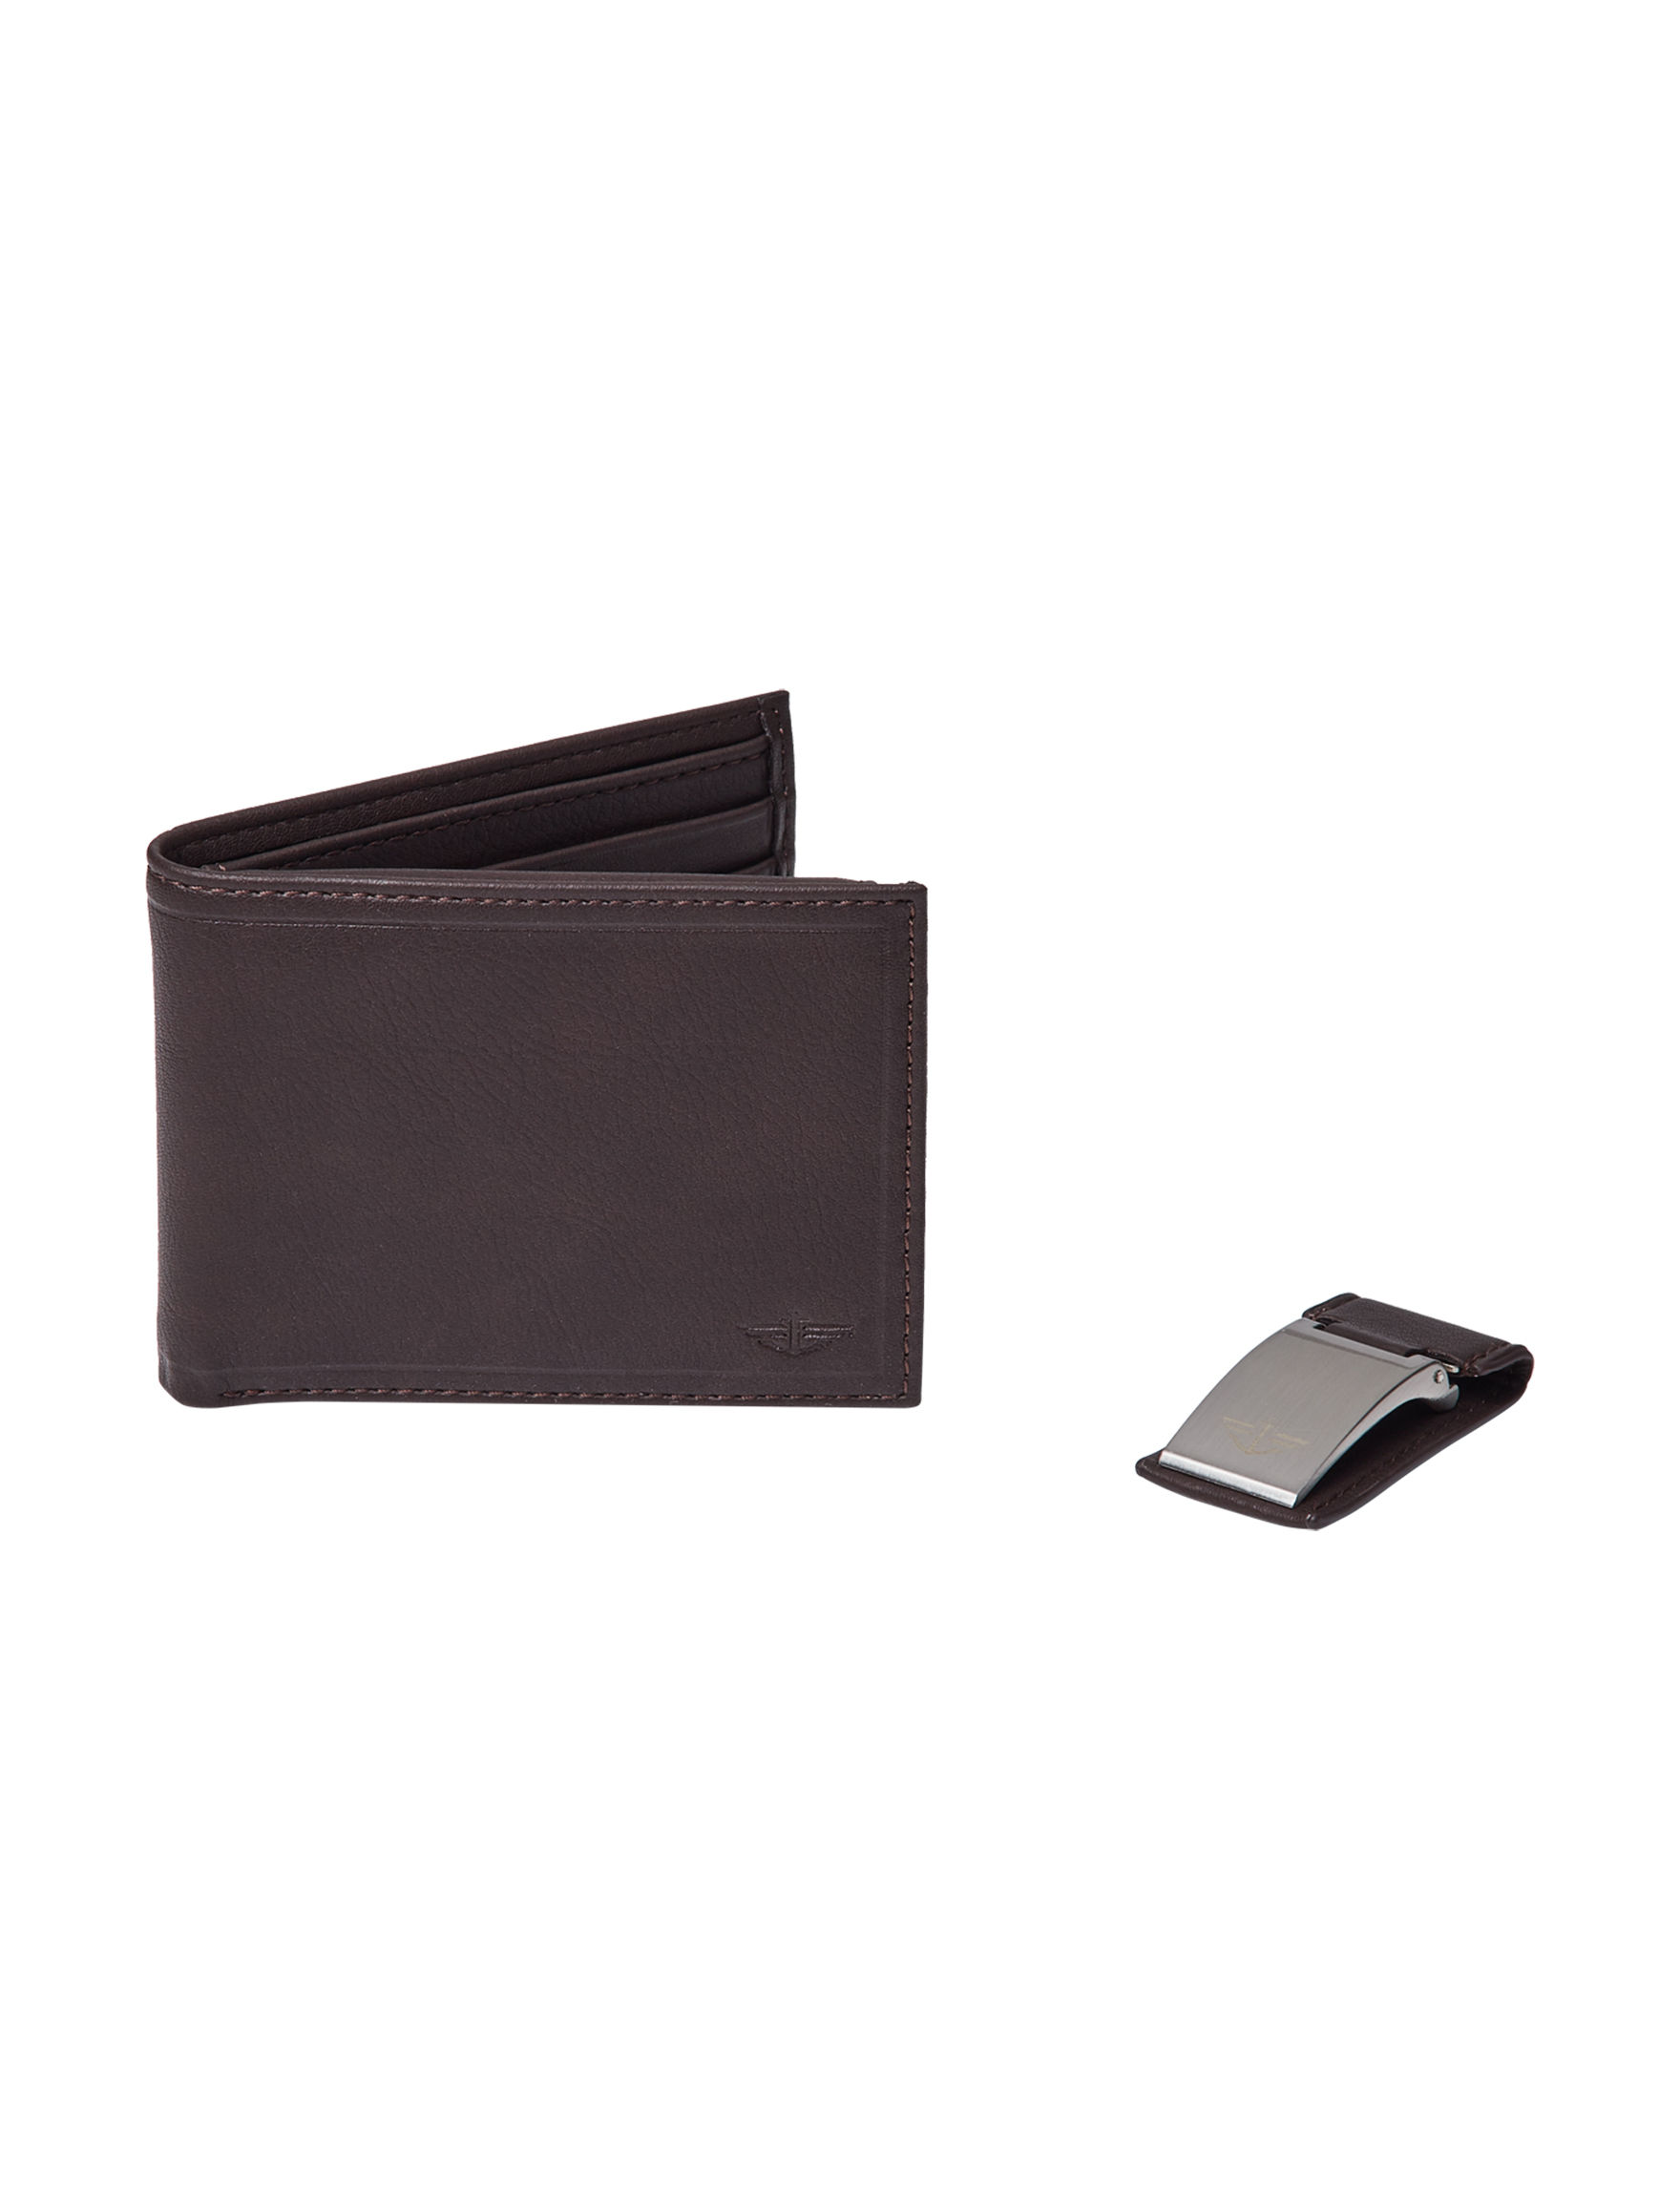 Dockers Black Bi-fold Wallets Money Clips